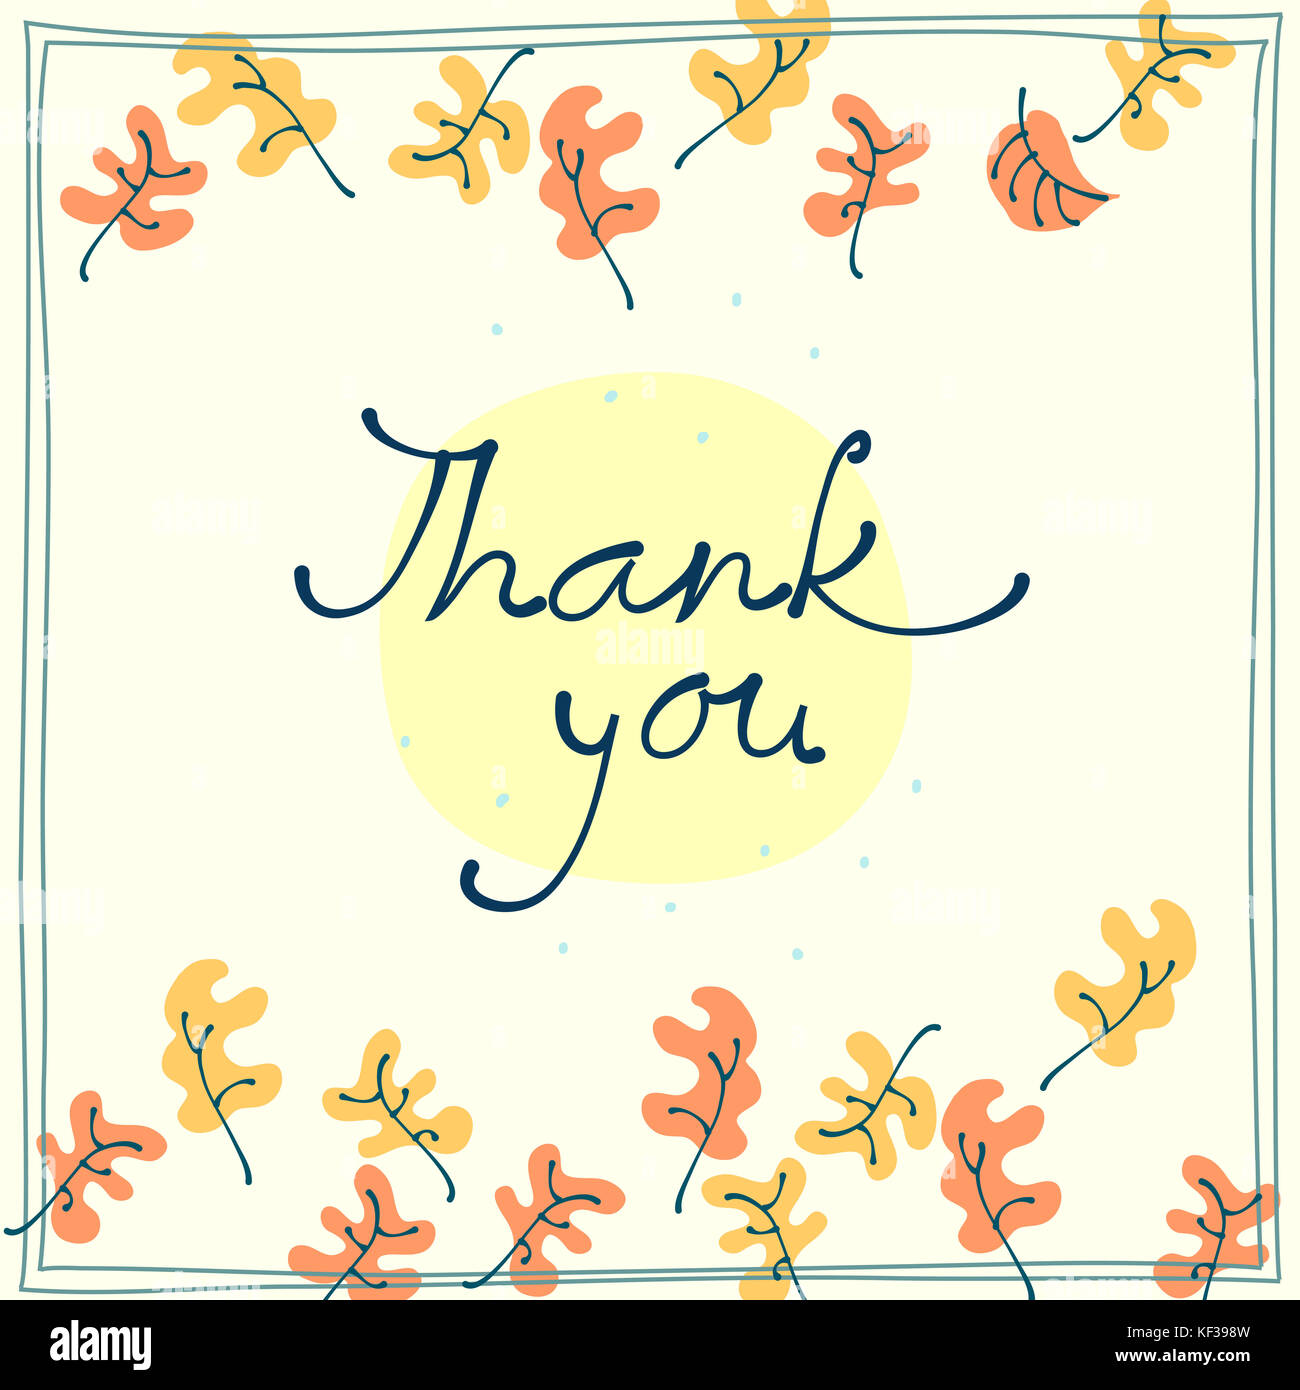 Thank you card design template simple greeting card with falling thank you card design template simple greeting card with falling leaves thanksgiving symbol sign m4hsunfo